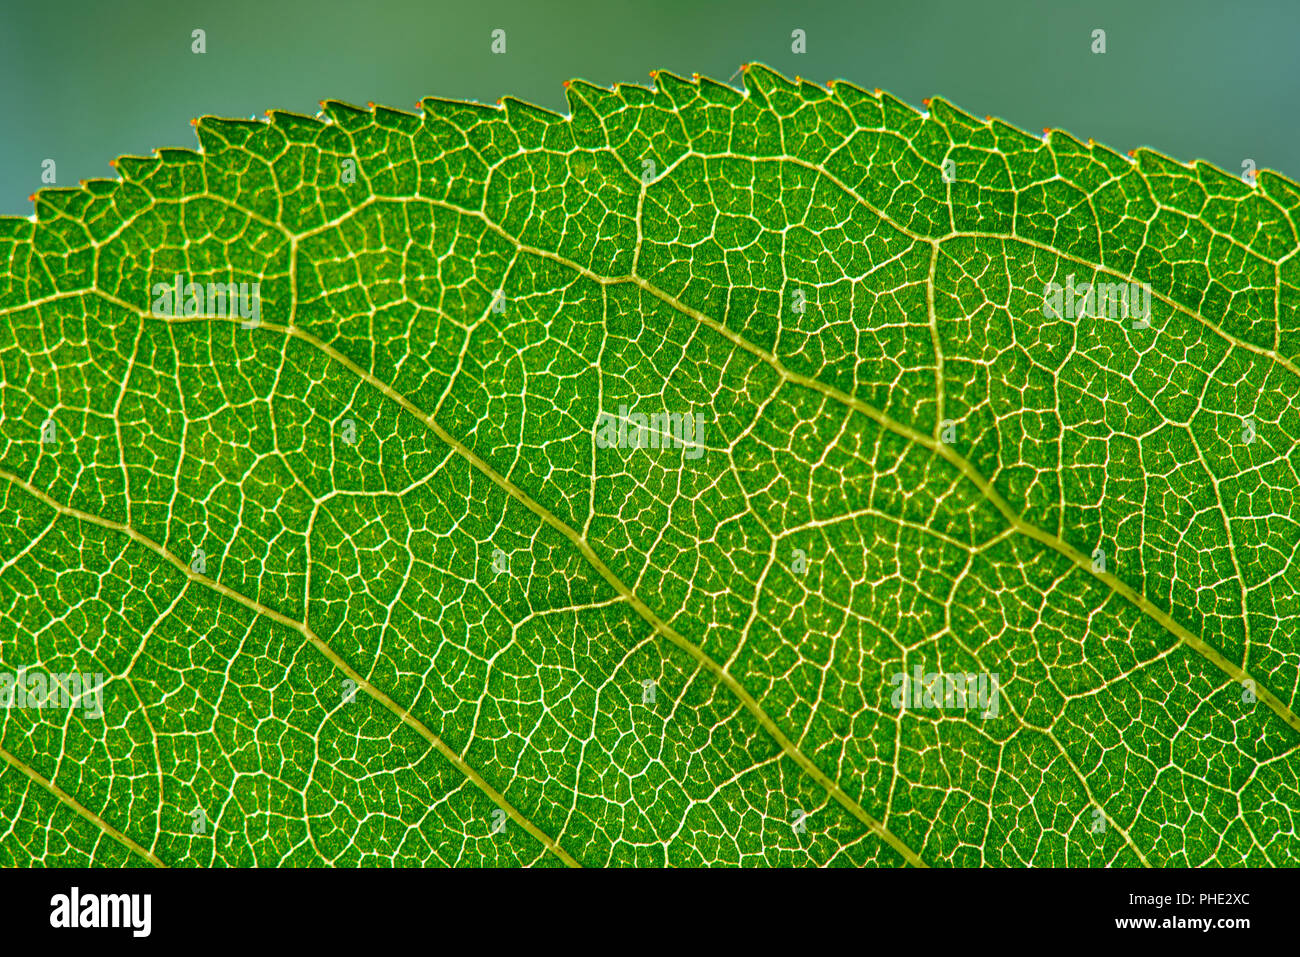 Leaf texture with veins - Stock Image